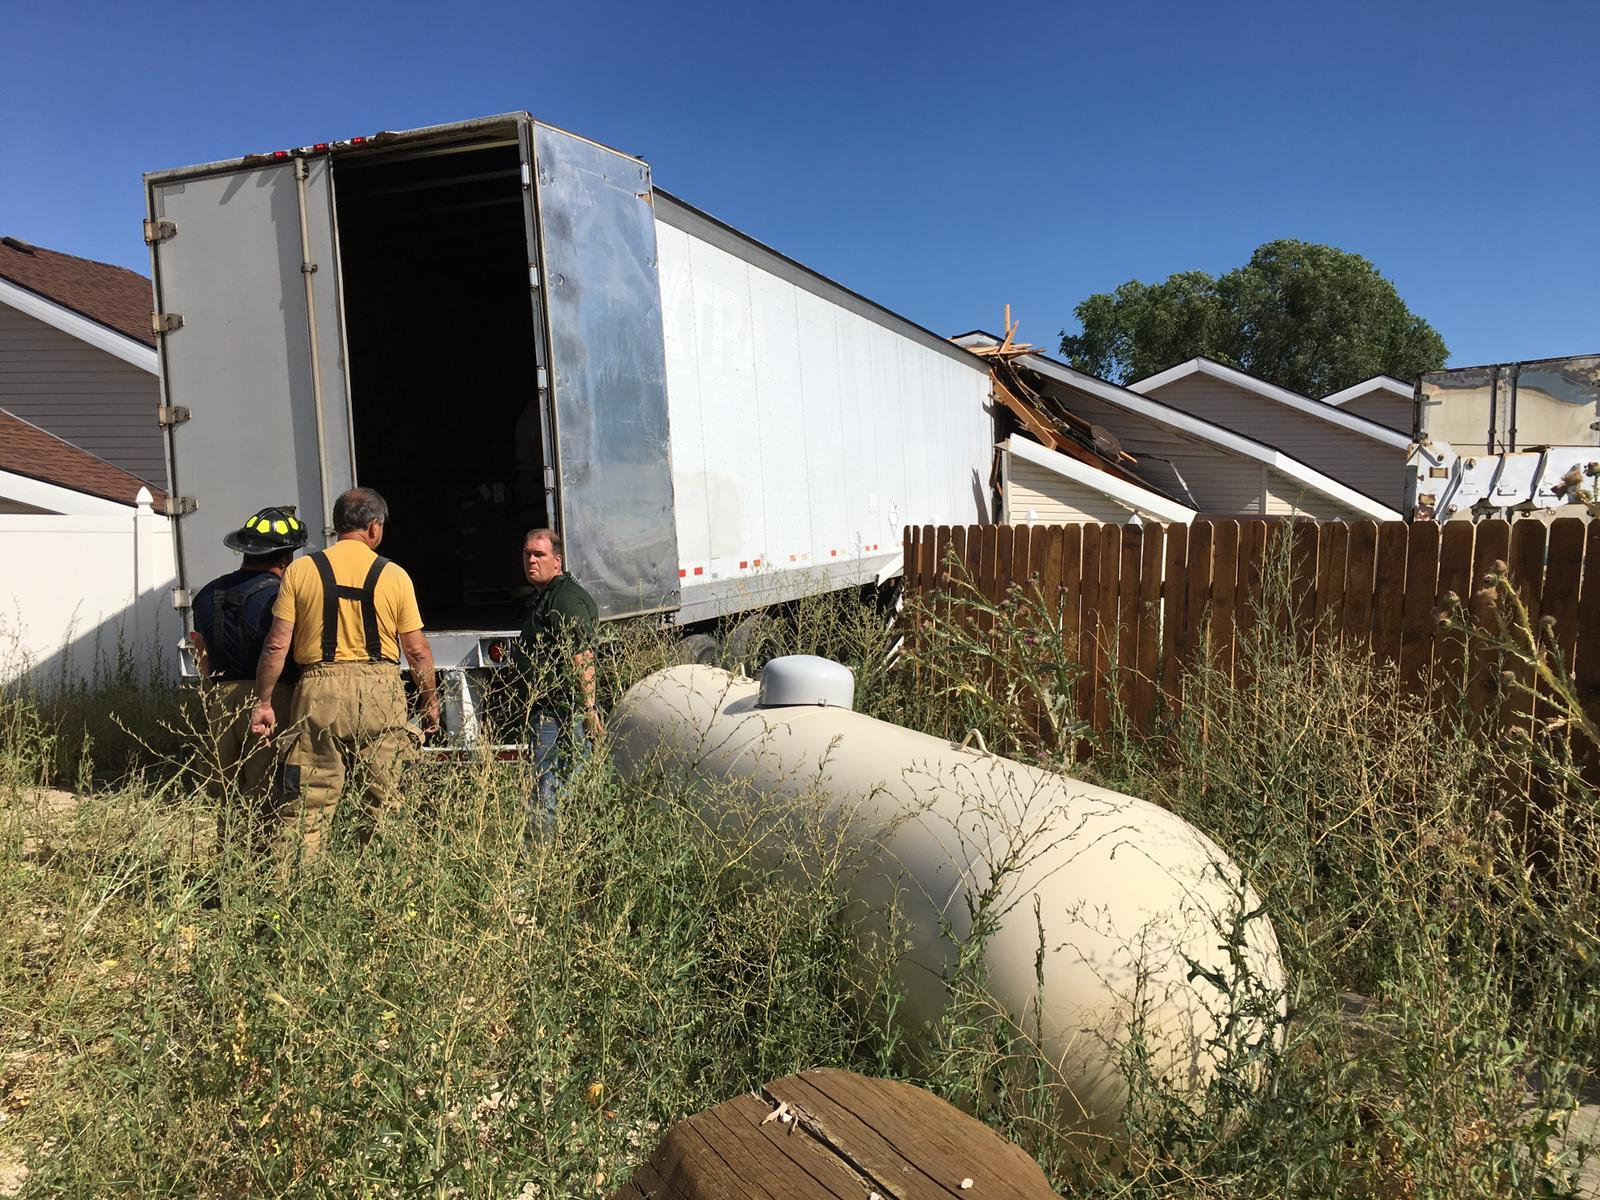 Photos: Semitrailer 'blasts' through intersection, storage buildings in Garden City